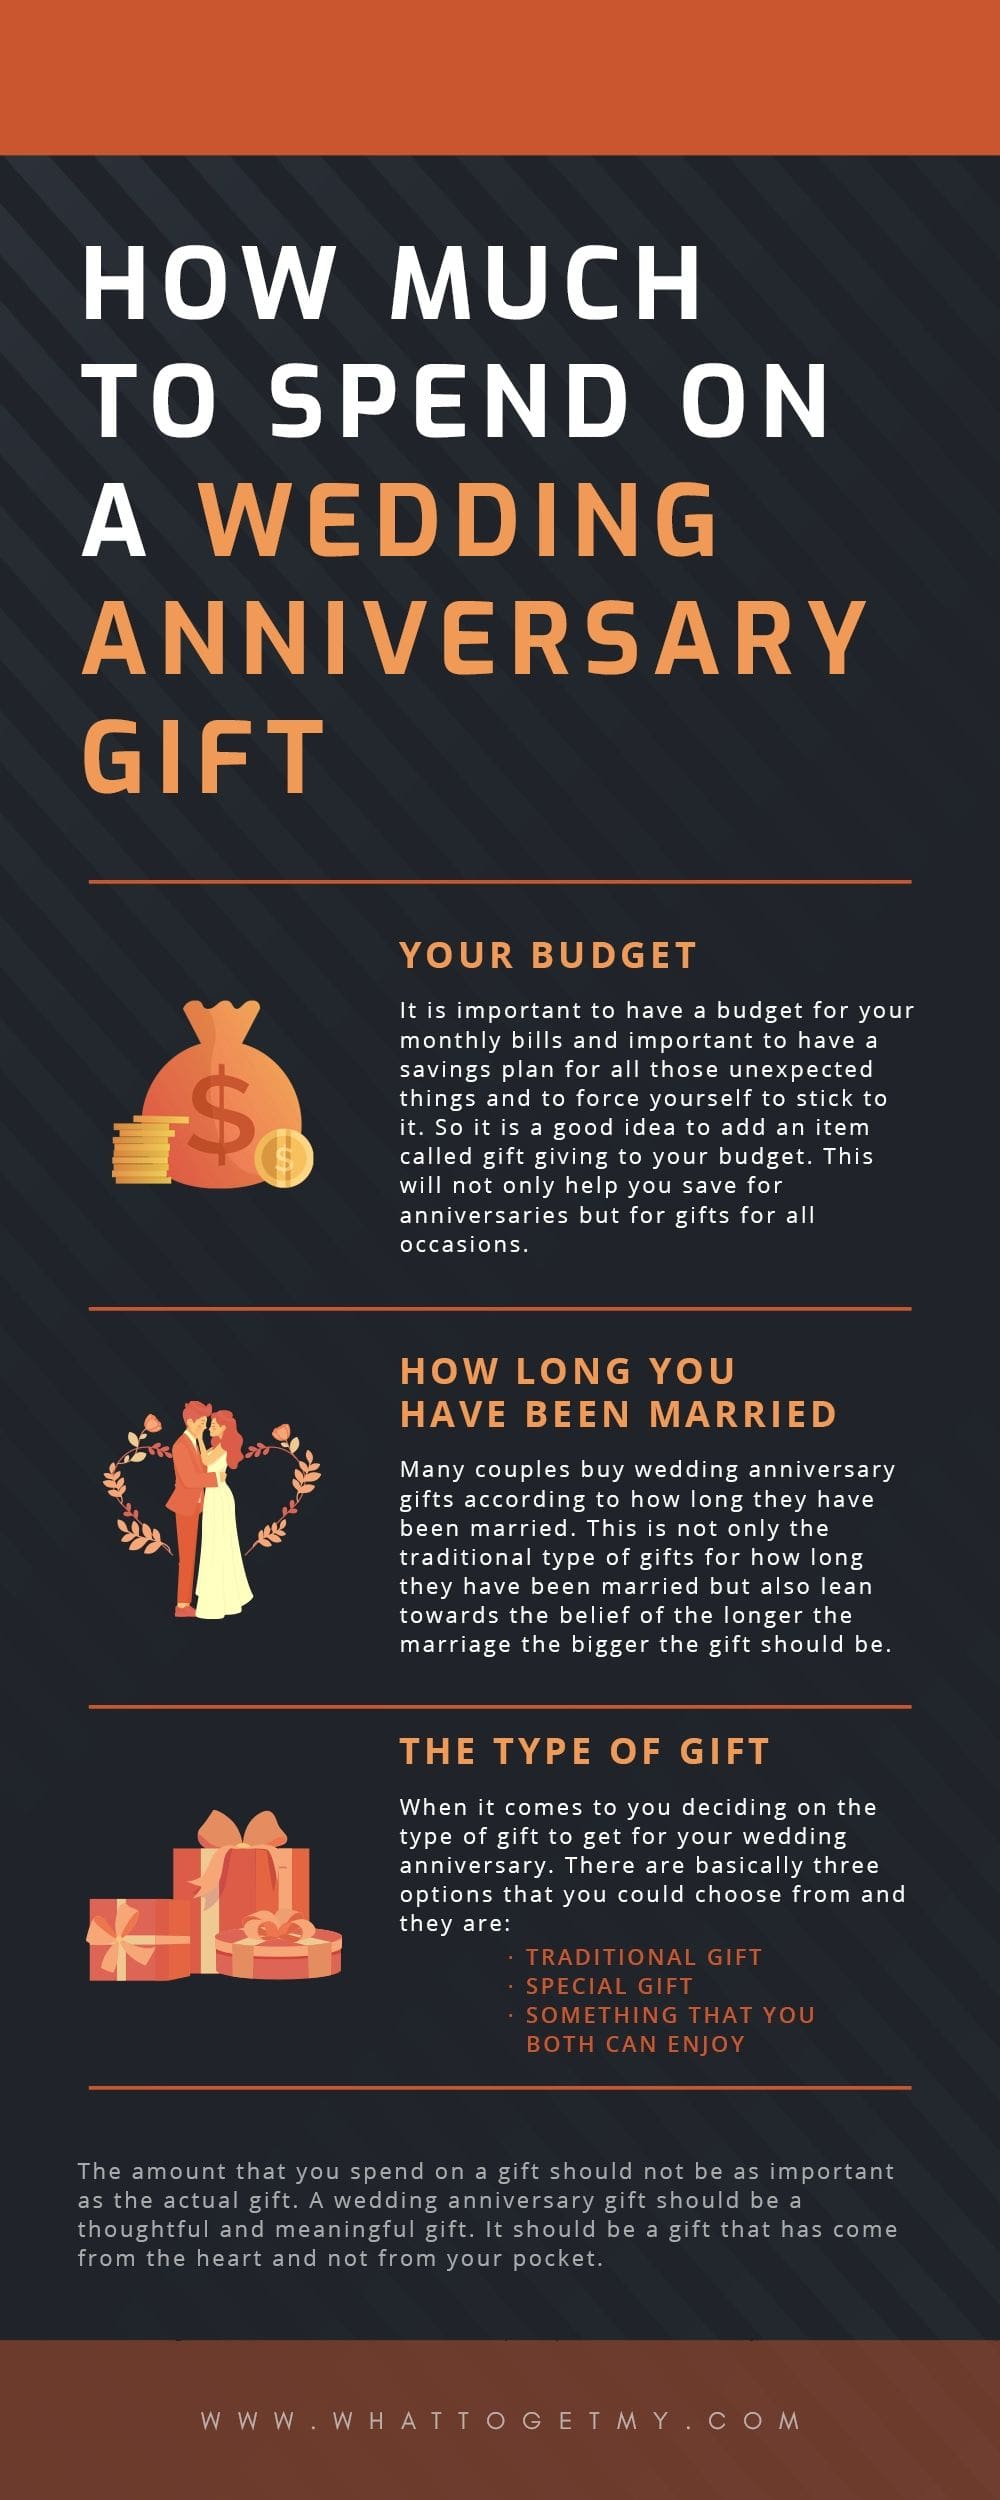 Infographic How Much to Spend on a Wedding Anniversary Gift